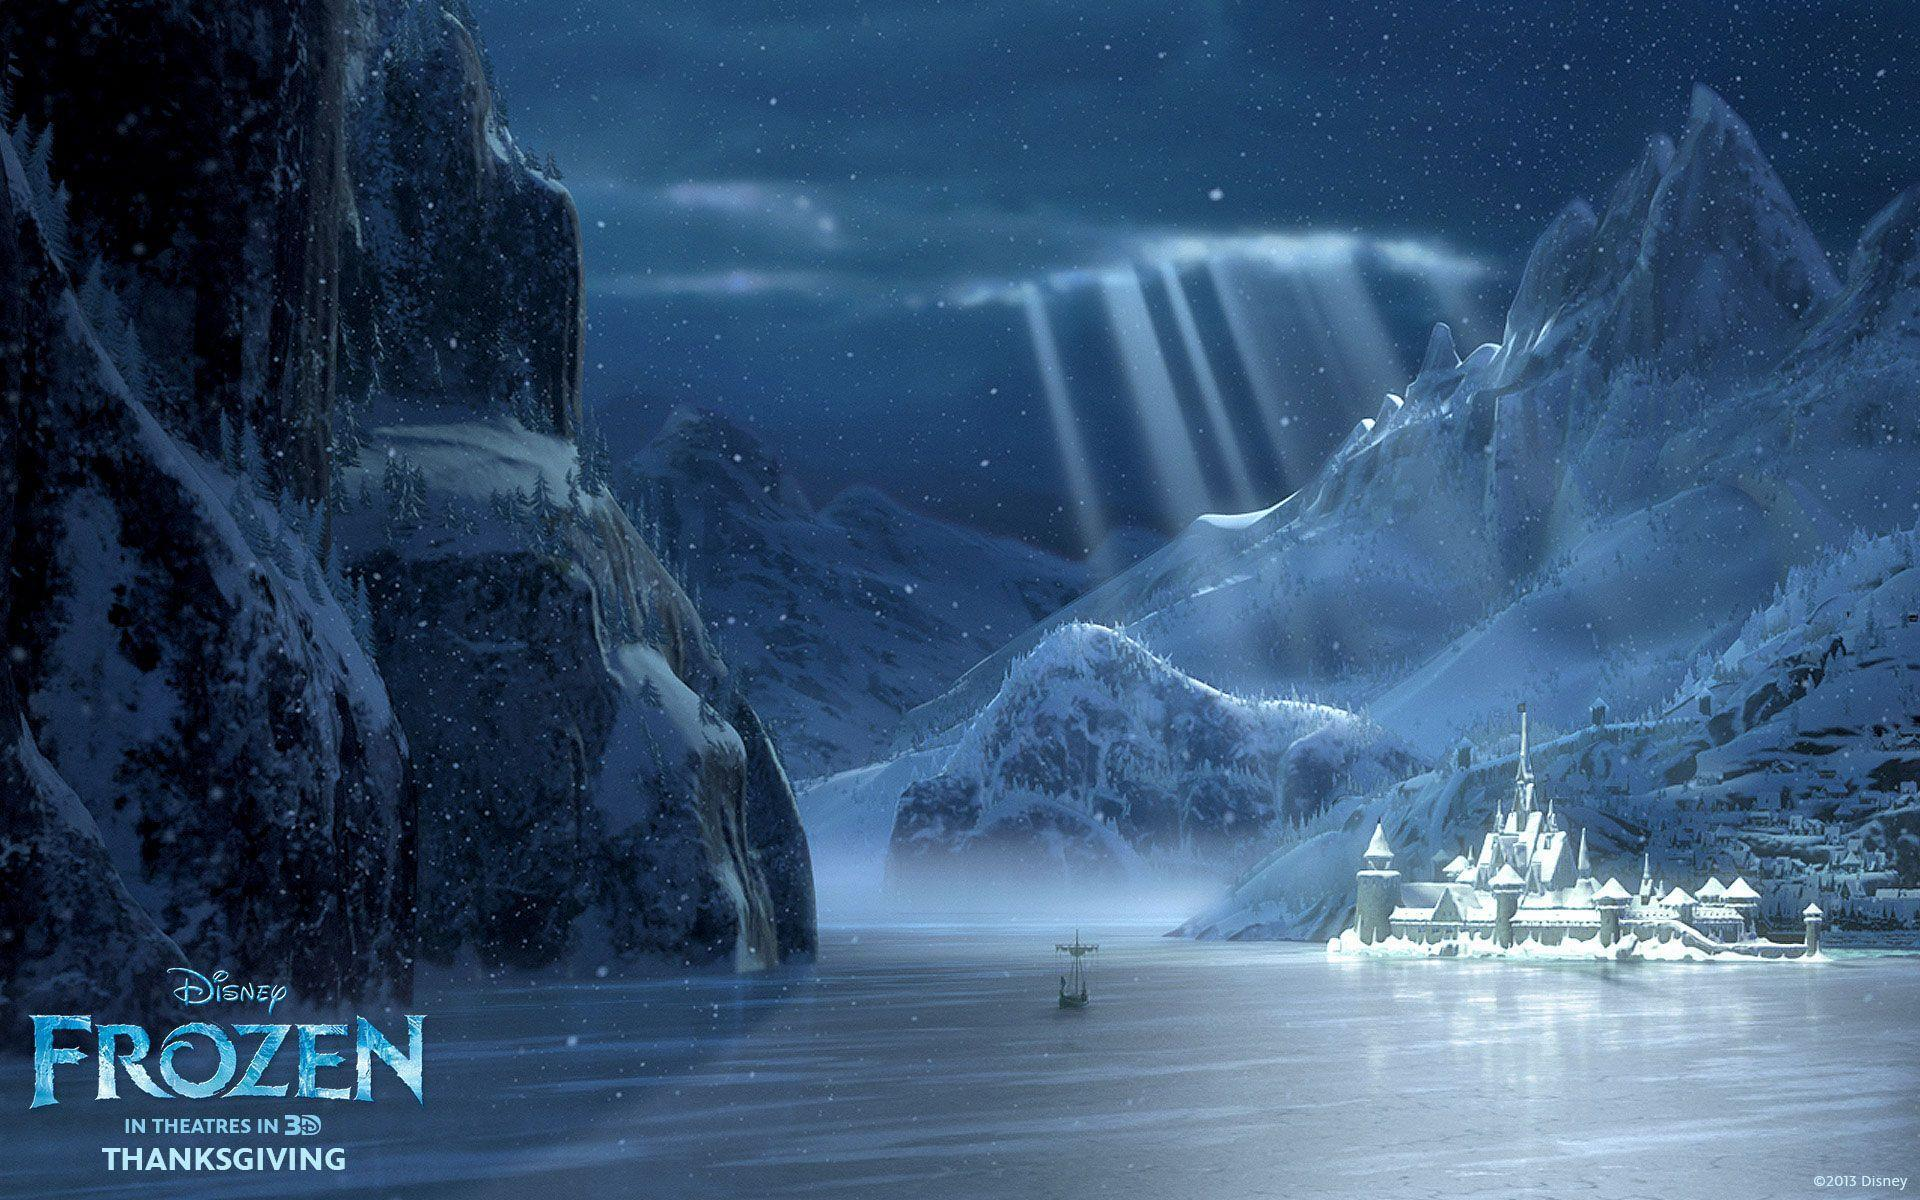 Frozen 2013 Movie Wallpapers [HD] & Facebook Timeline Covers